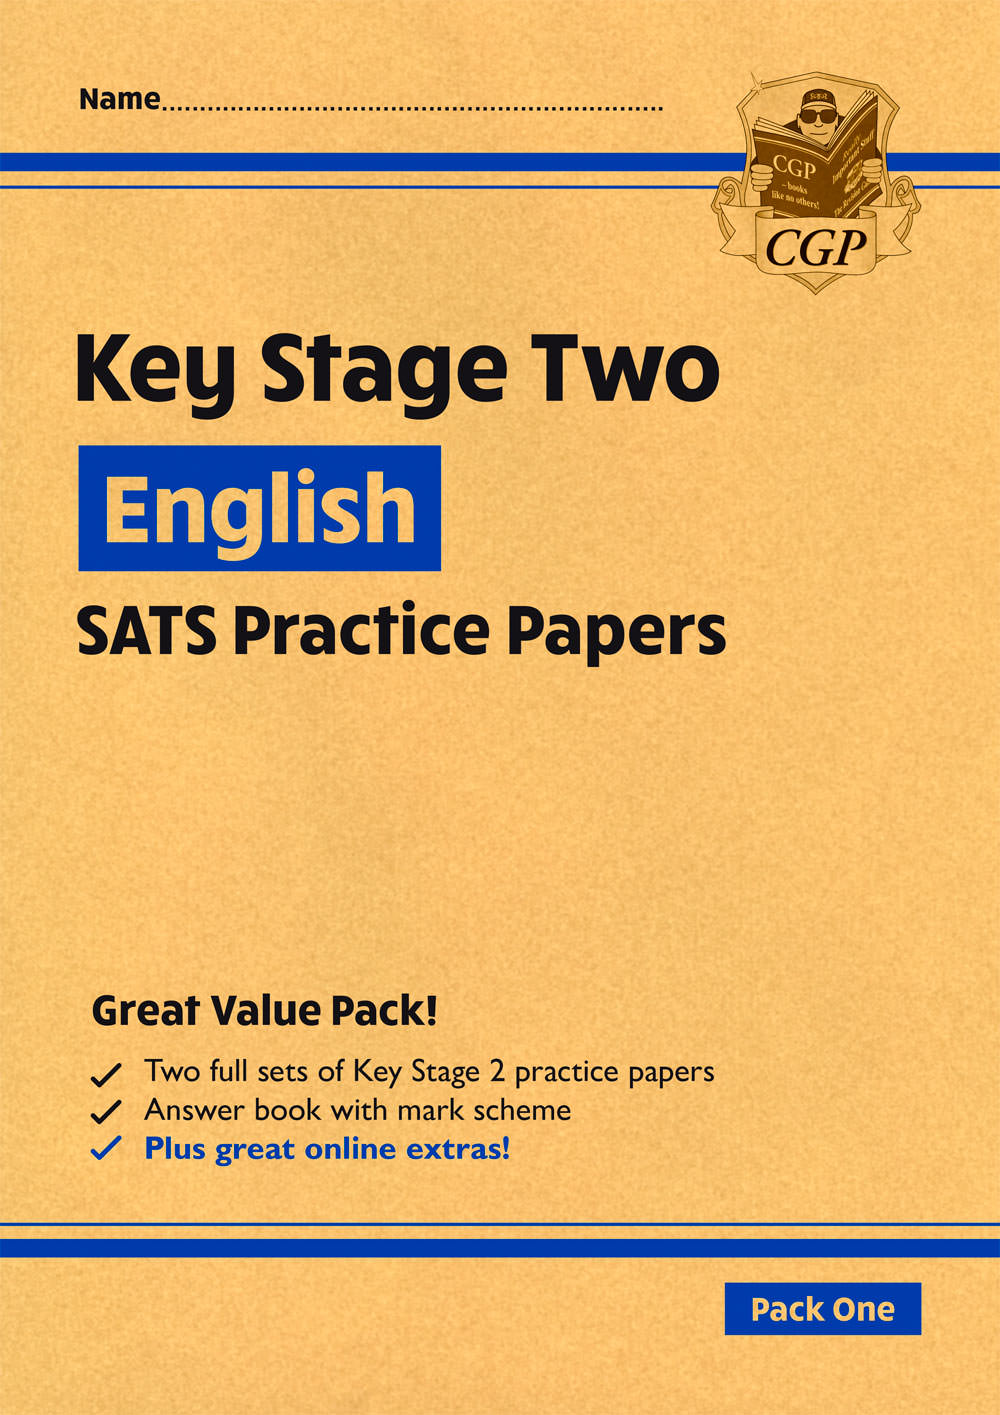 EHEP27 - New KS2 English SATS Practice Papers: Pack 1 (with free Online Extras)